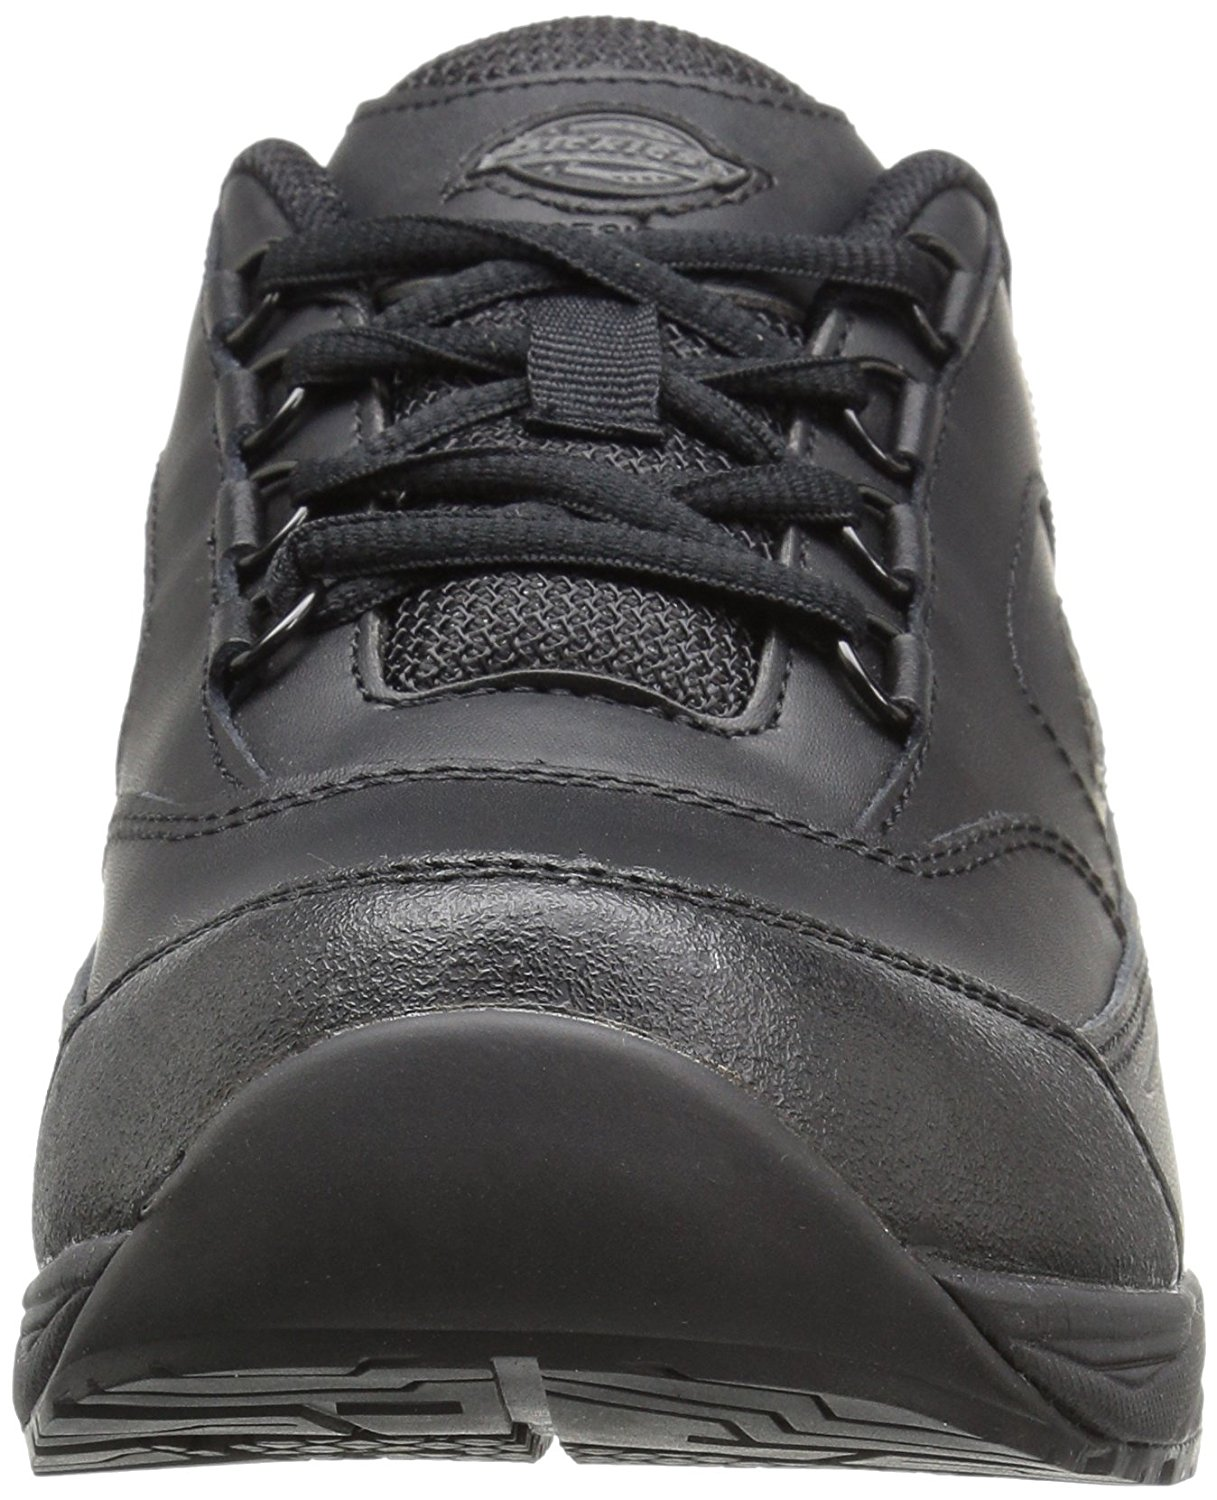 Dickies Uomo Charge Slip Resistant Shoes with Michelin Technical Soles Soles Technical ddff59